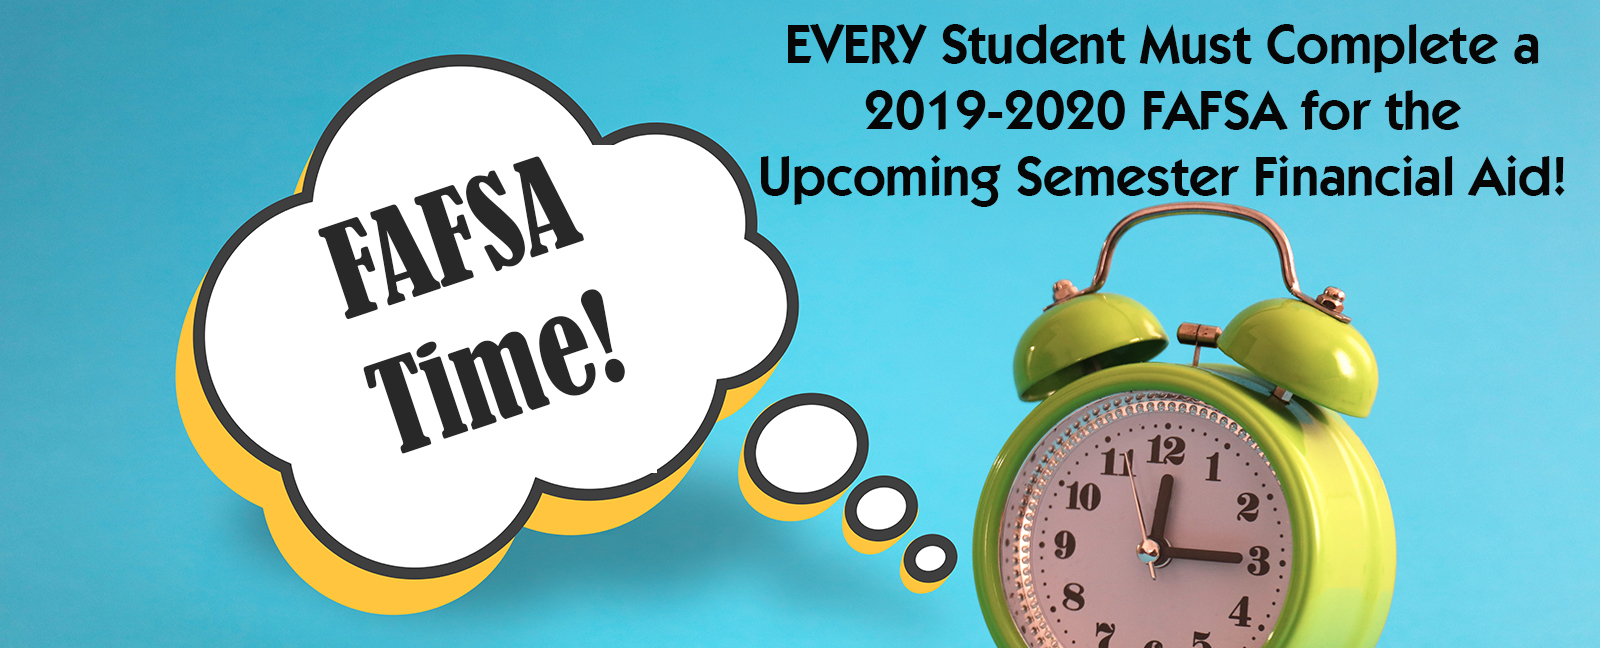 FAFSA Time! Every student must complete a 2019-2020 FAFSA for the upcoming semester financial aid!